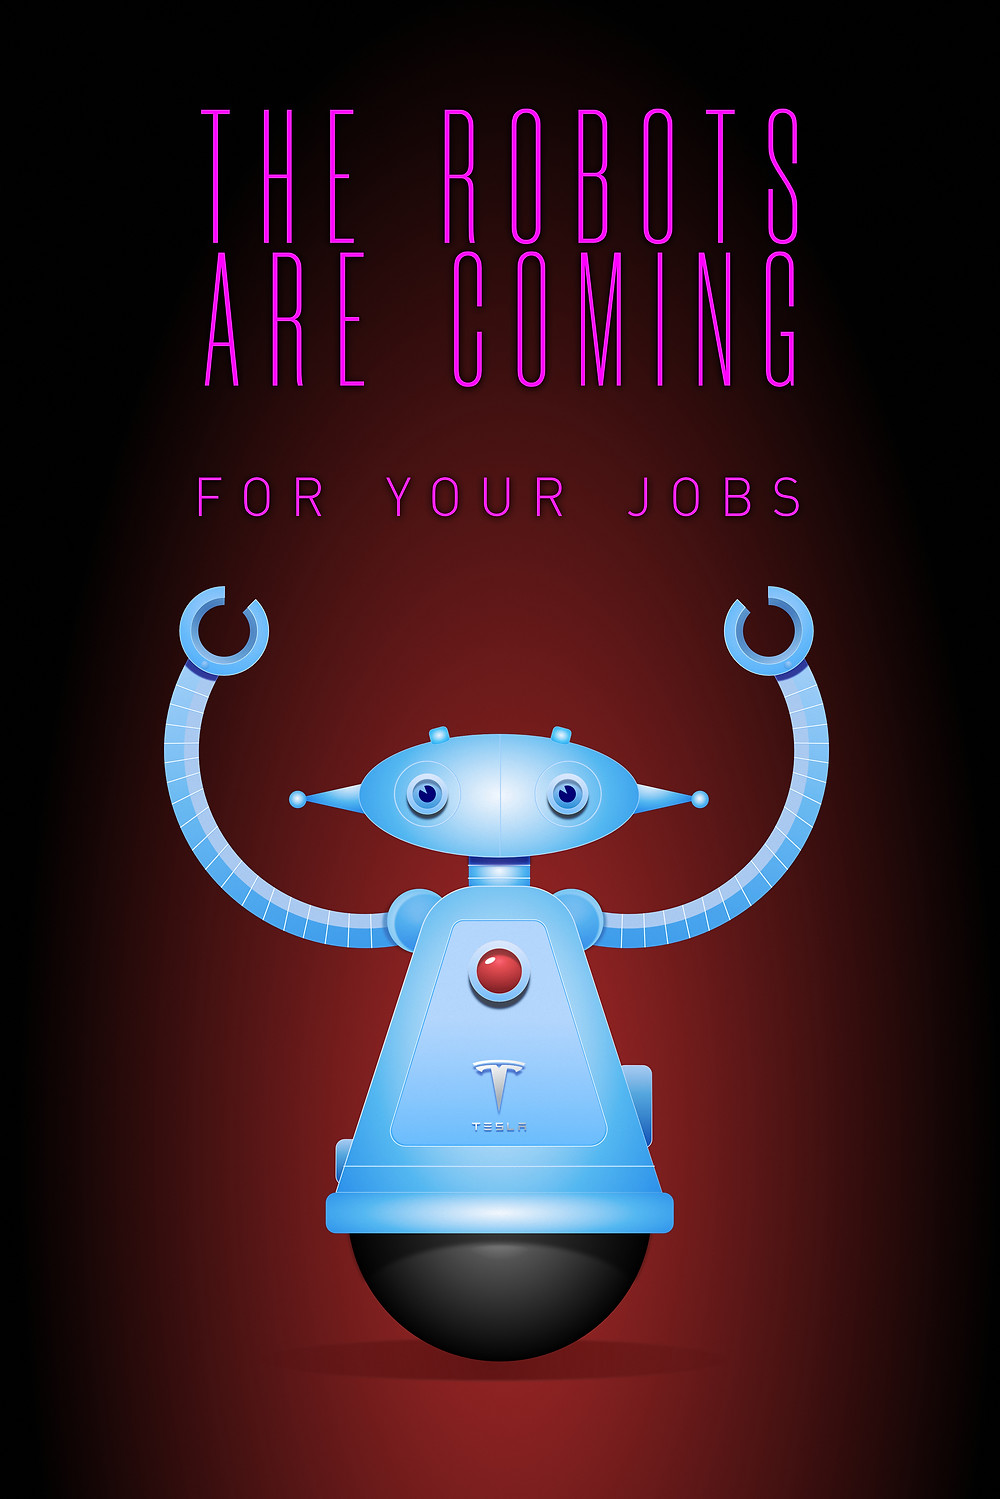 Rise Robots Rise. This illustration represents the impending tidal wave of job loss from Robots and AI that the world isn't ready for.  Most people aren't paying attention to the fast-moving developments in these fields that have already created changes in job markets. More automation = less work for human beings. People often blame job loss in America to shipping jobs overseas, but the real problem is automation.